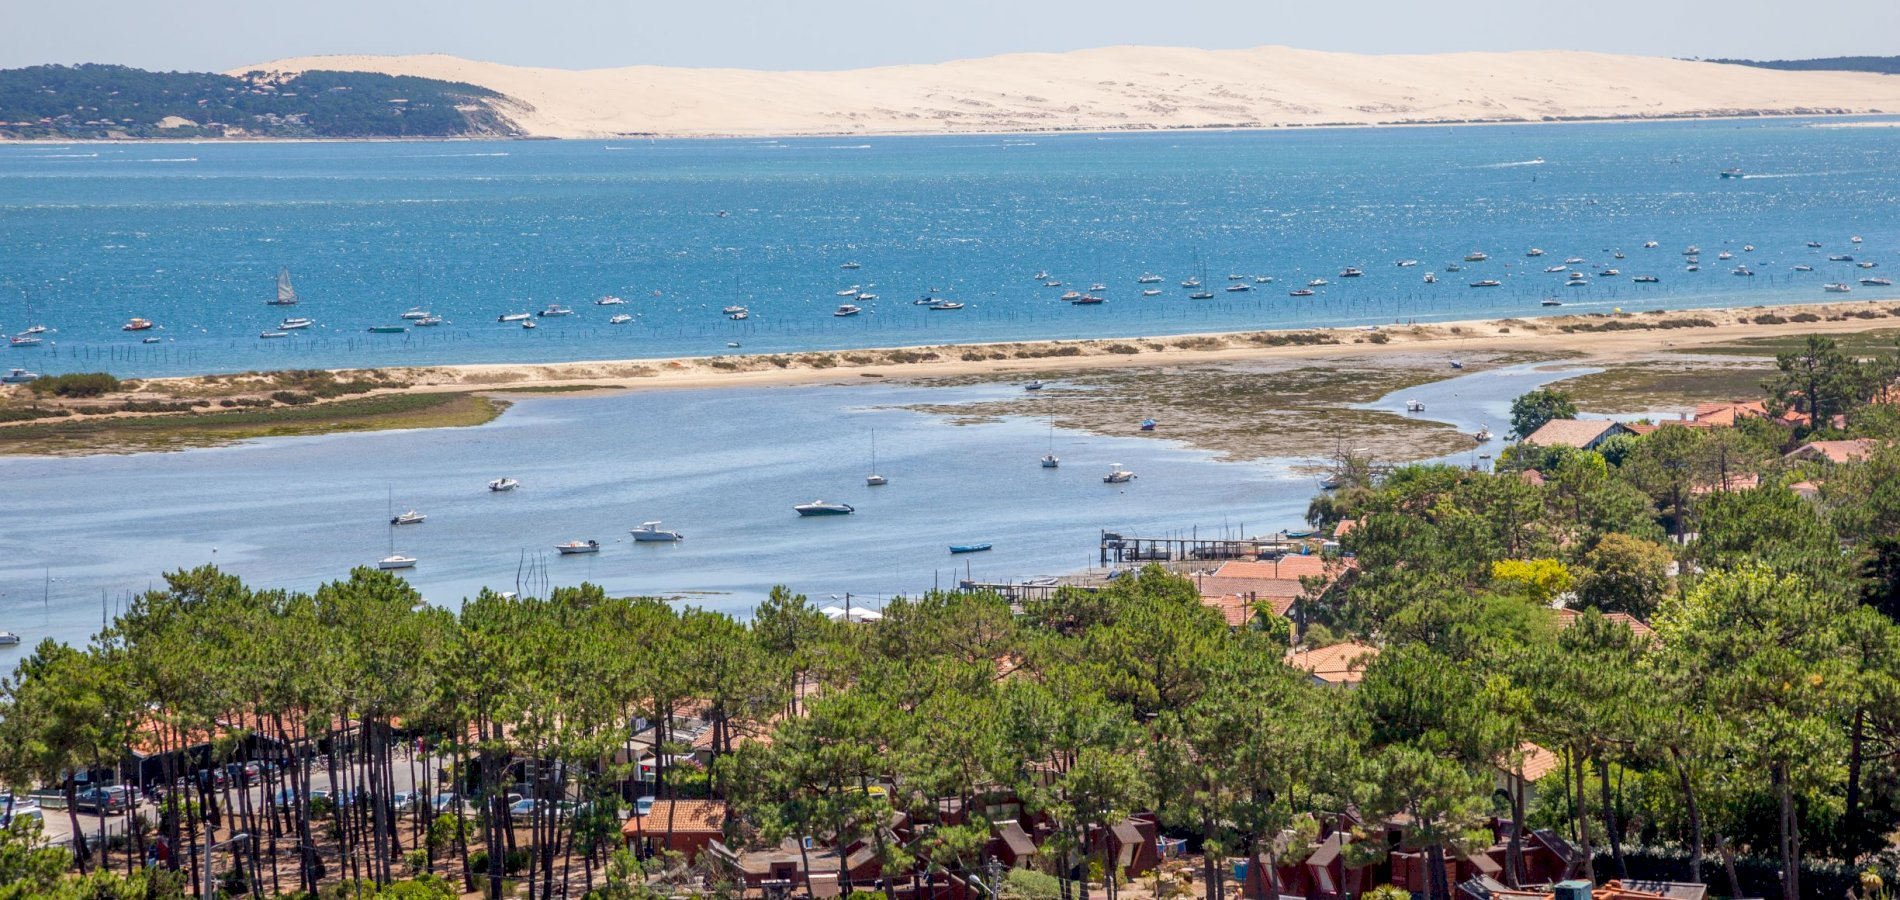 Ophorus Tours - 2-hour Traditional Pinasse Boat Trip on Arcachon Bay